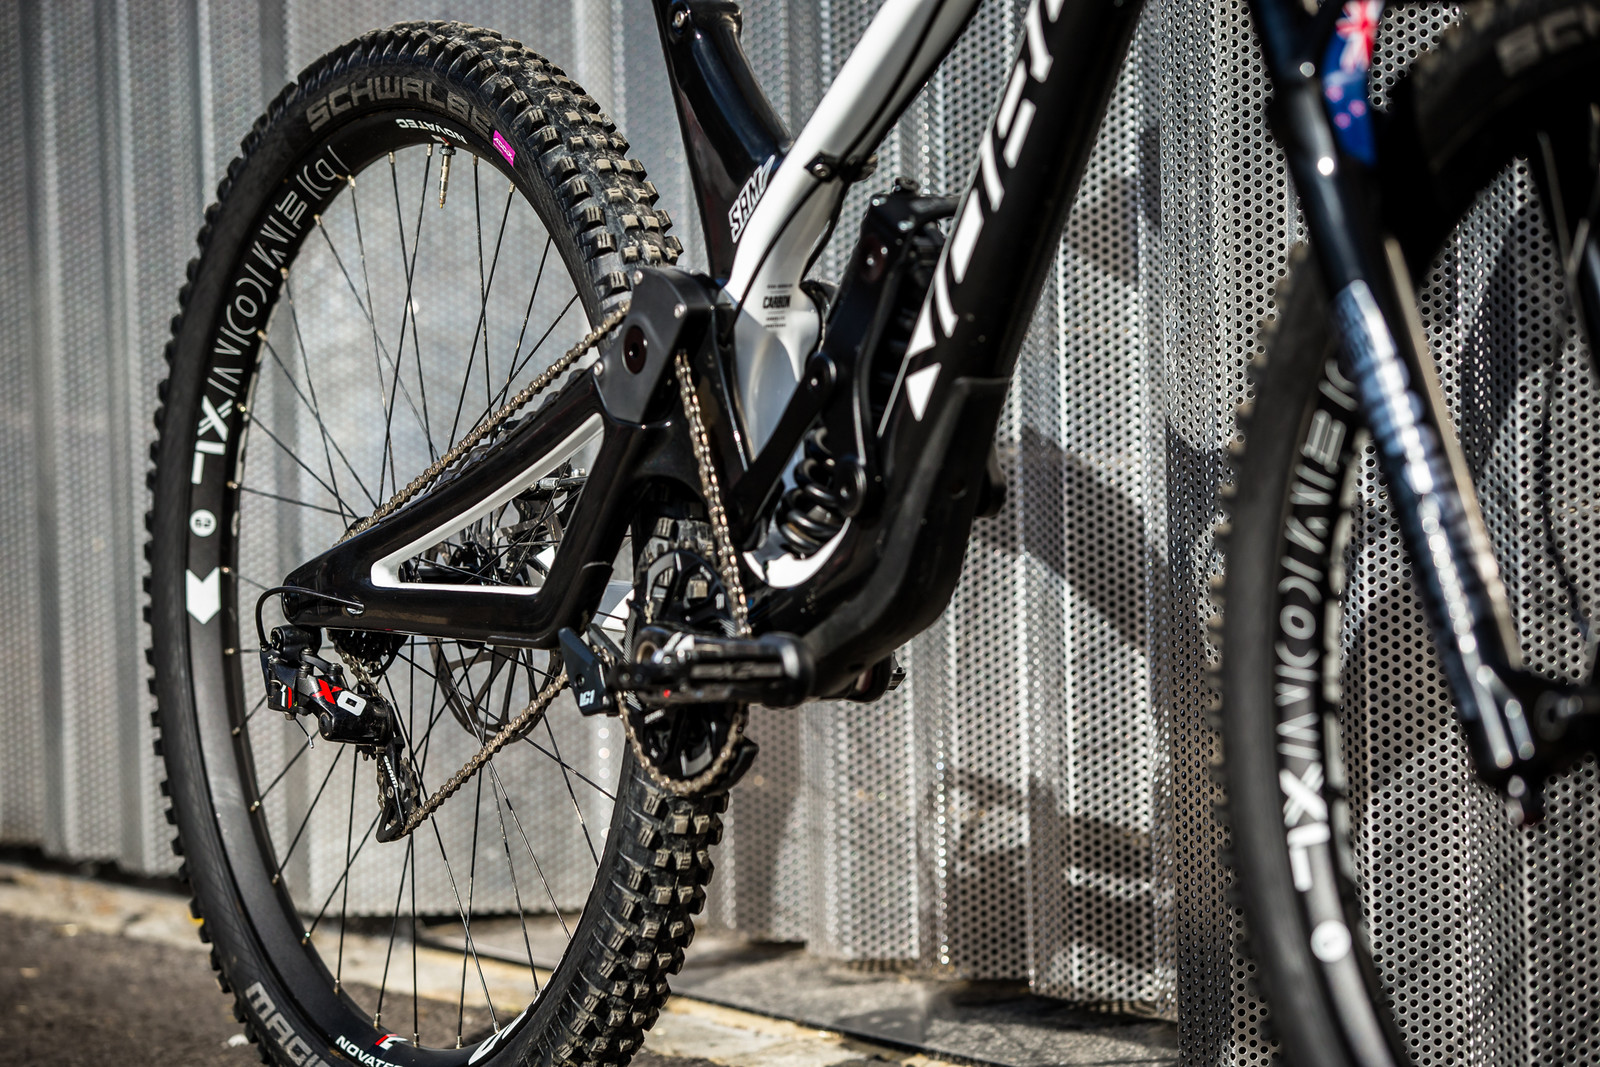 The HSP Goodness - WORLD CHAMPS BIKES - Sam Blenkinsop and Henry Fitzgerald's Norco Aurum HSP's - Mountain Biking Pictures - Vital MTB